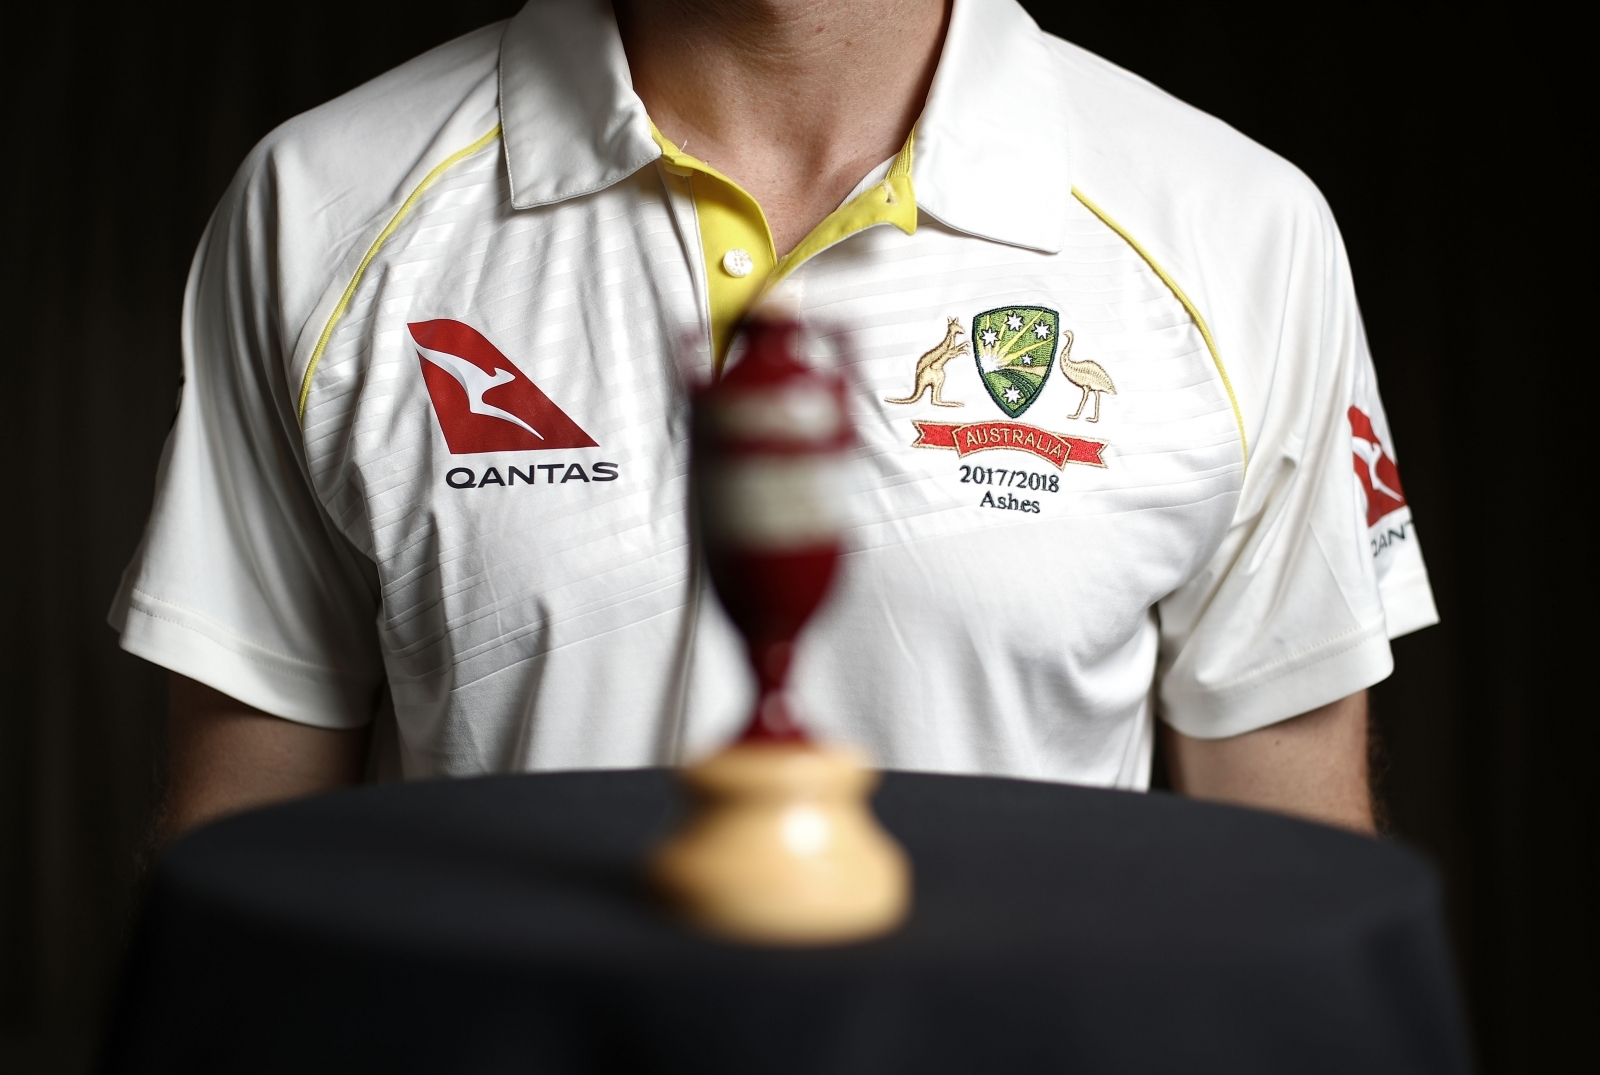 Ashes 2017/18